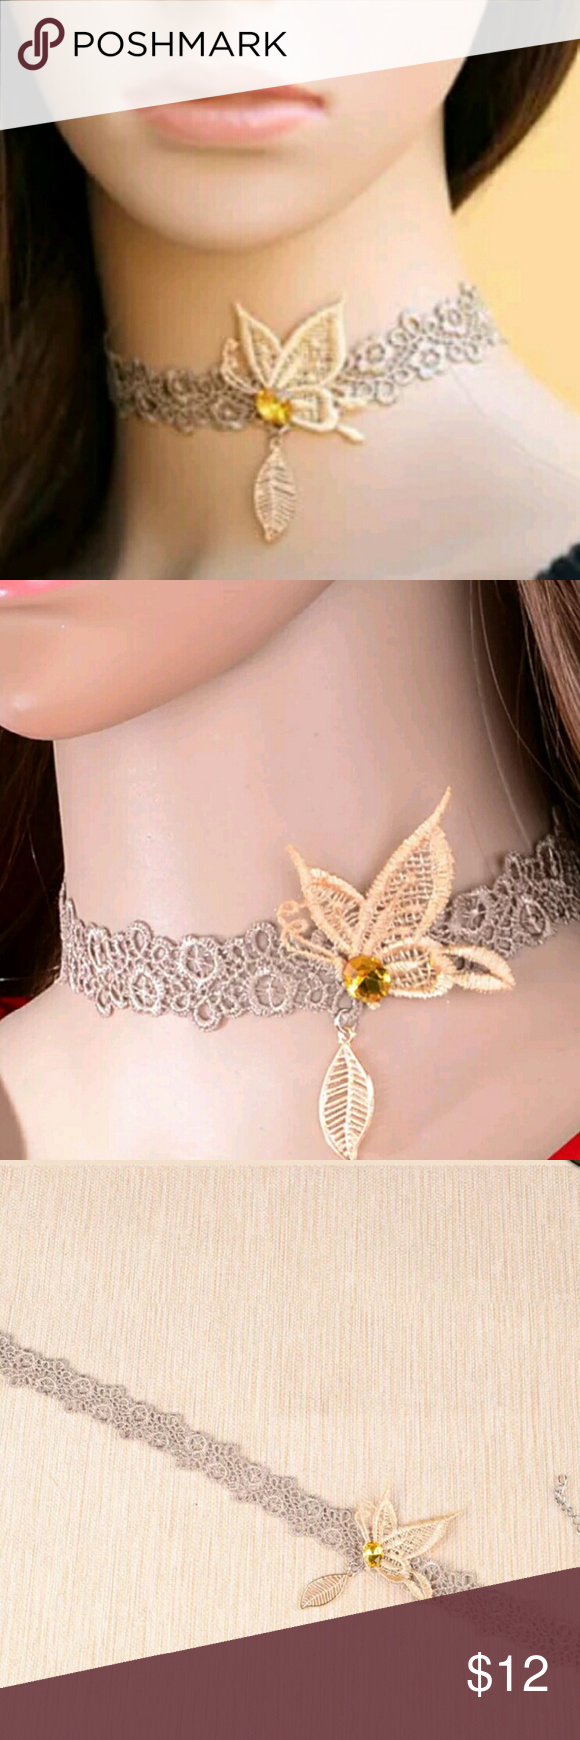 Retro Butterfly Lace Choker Necklace This is a beautiful tan lace embroidered choker with a cream colored butterfly, a orange gemstone, and a yellow leaf dangling from the bottom. Brand new Retro Jewelry Necklaces